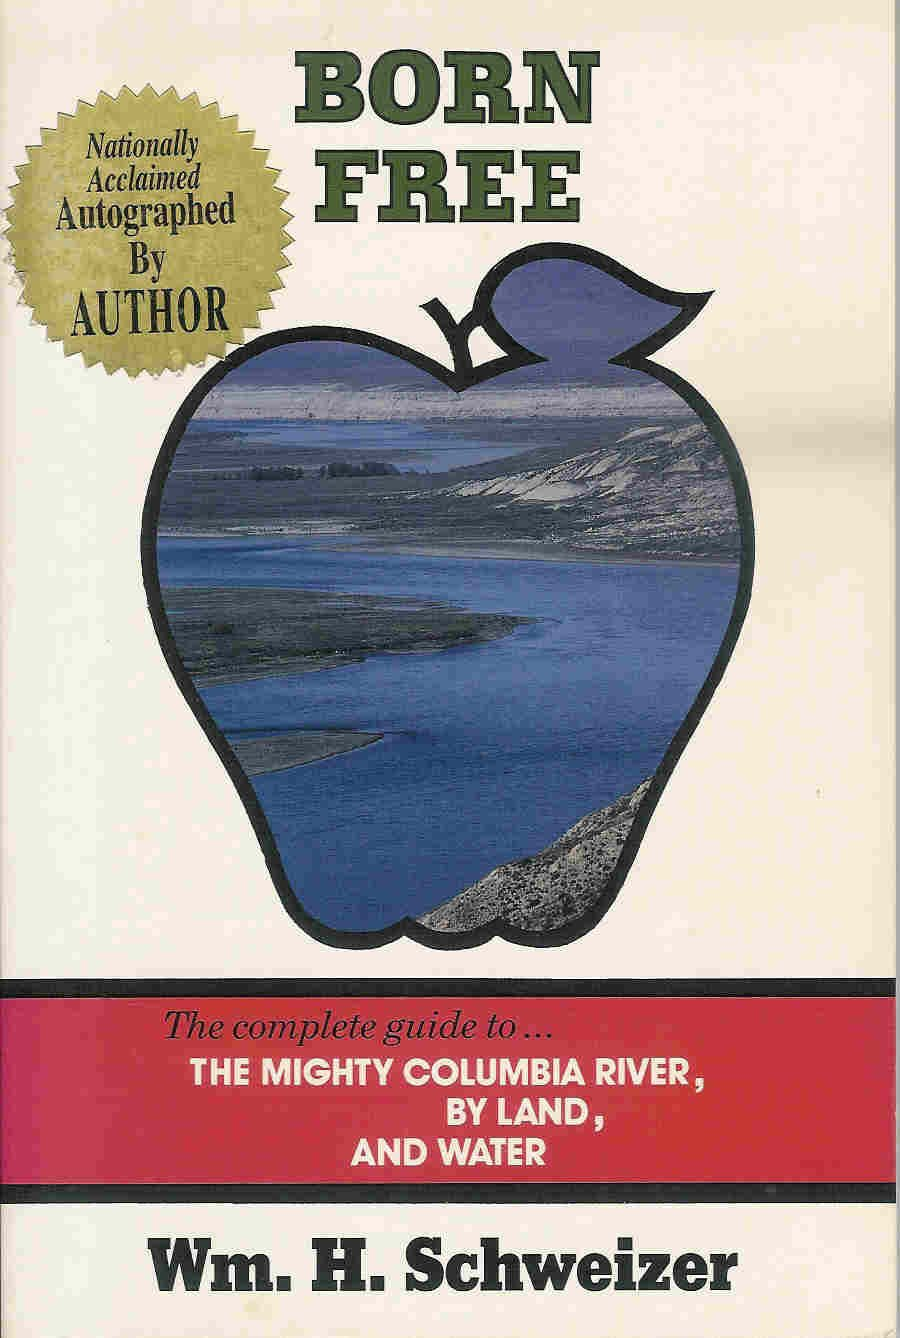 Born free: The complete guide to the mighty Columbia River, by land and water, Schweizer, William H